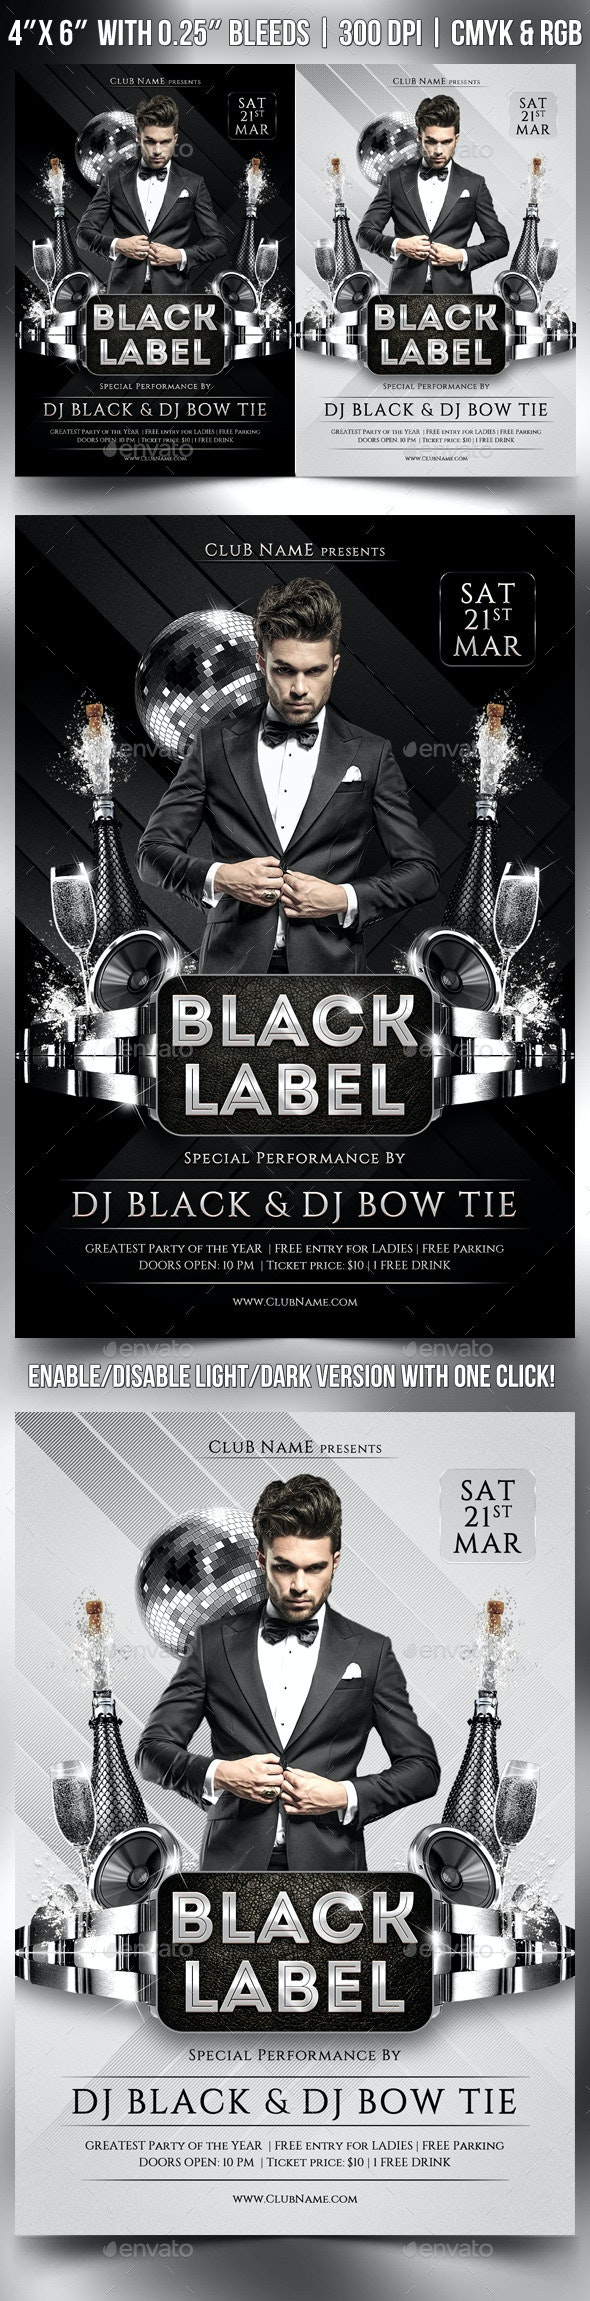 Black Label Flyer Template - Clubs & Parties Events